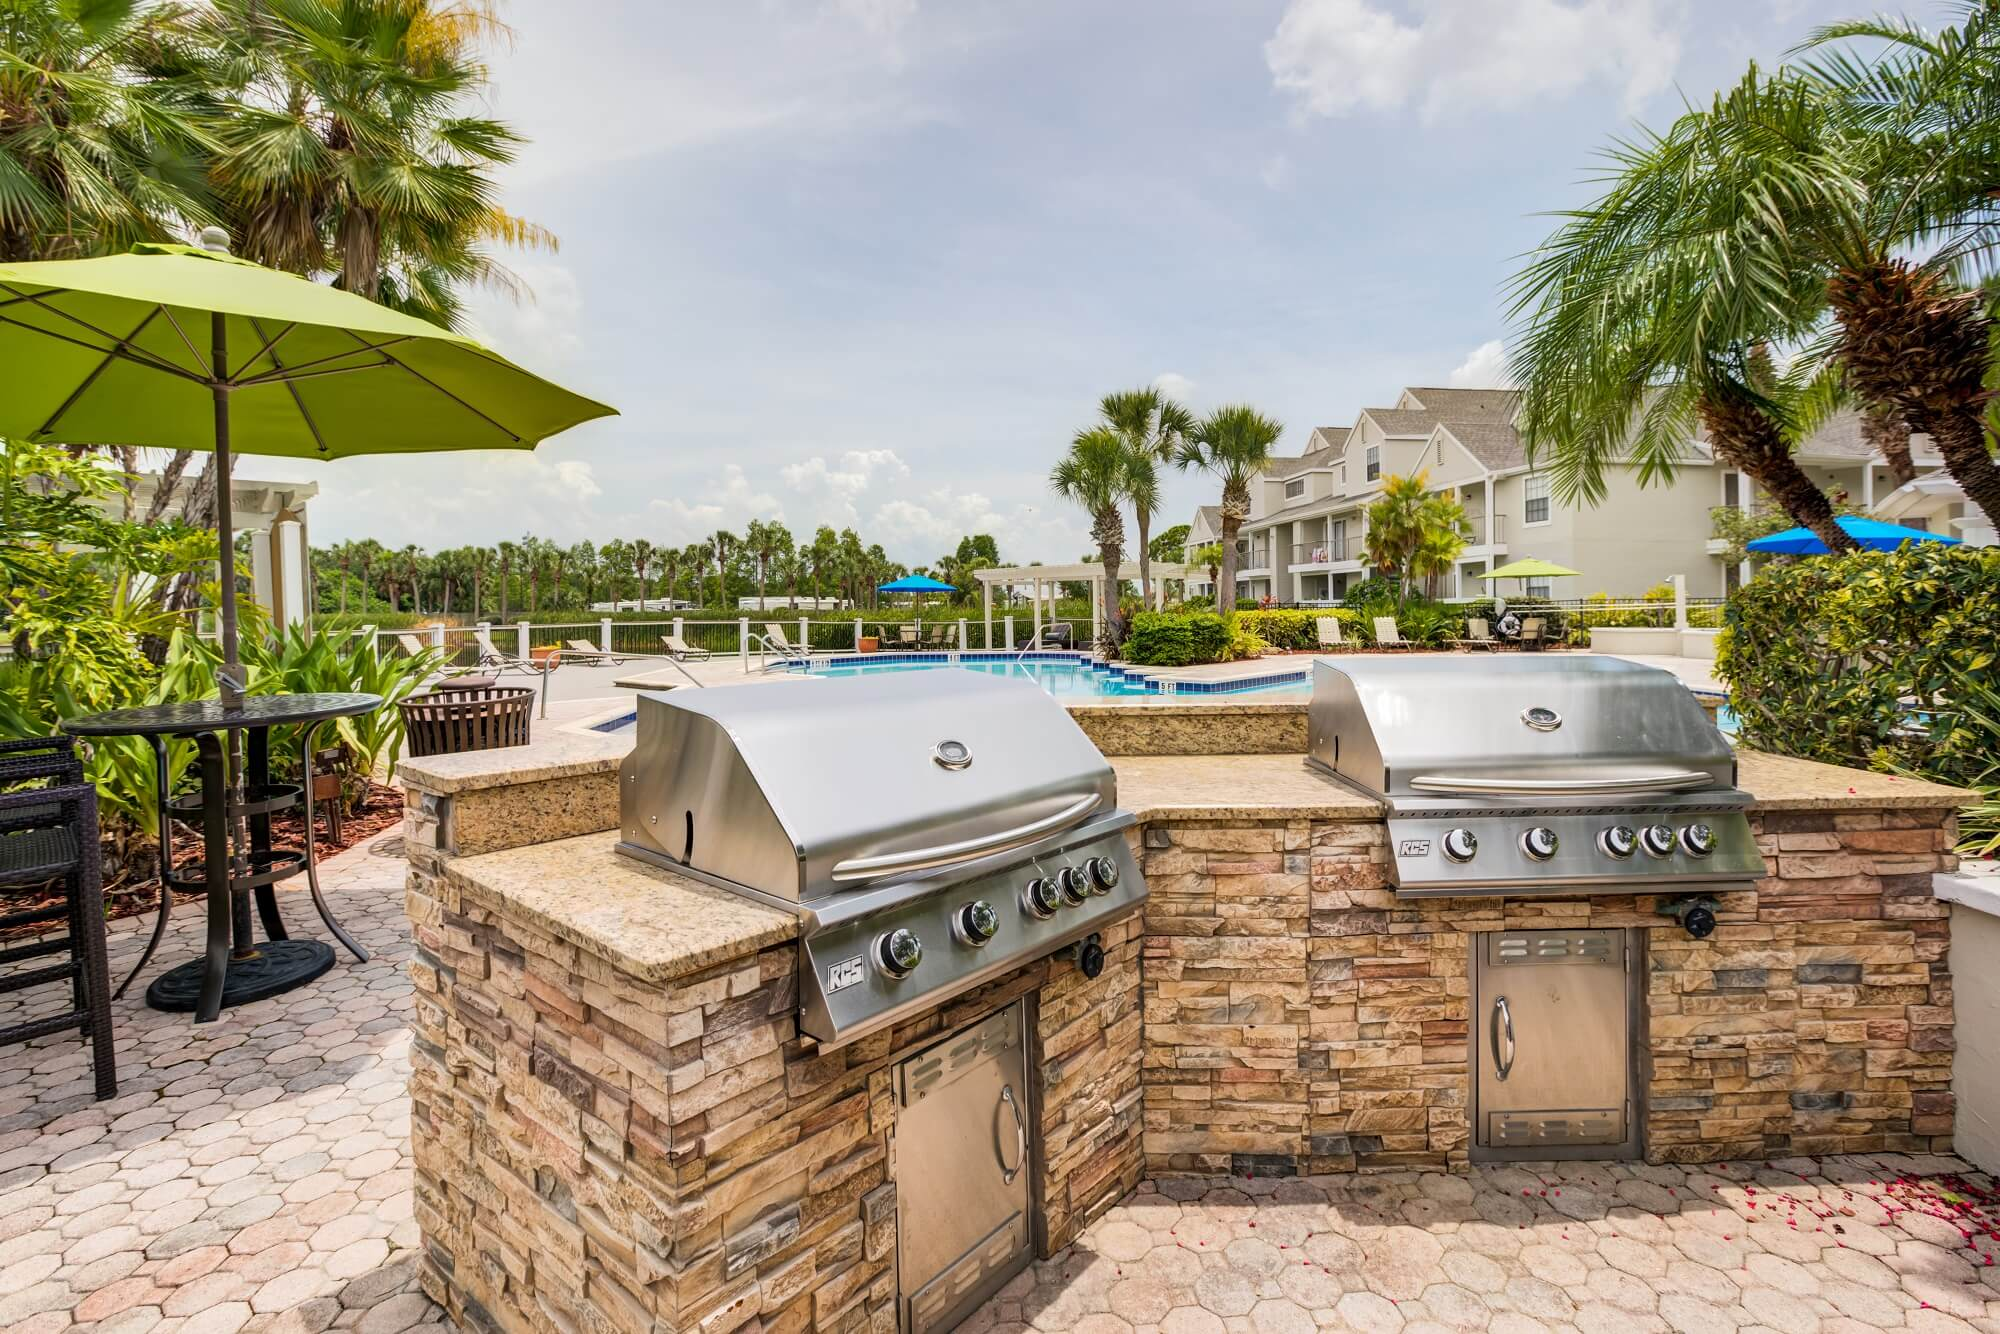 two 4 burner grills with stone countertops with view of the pool.